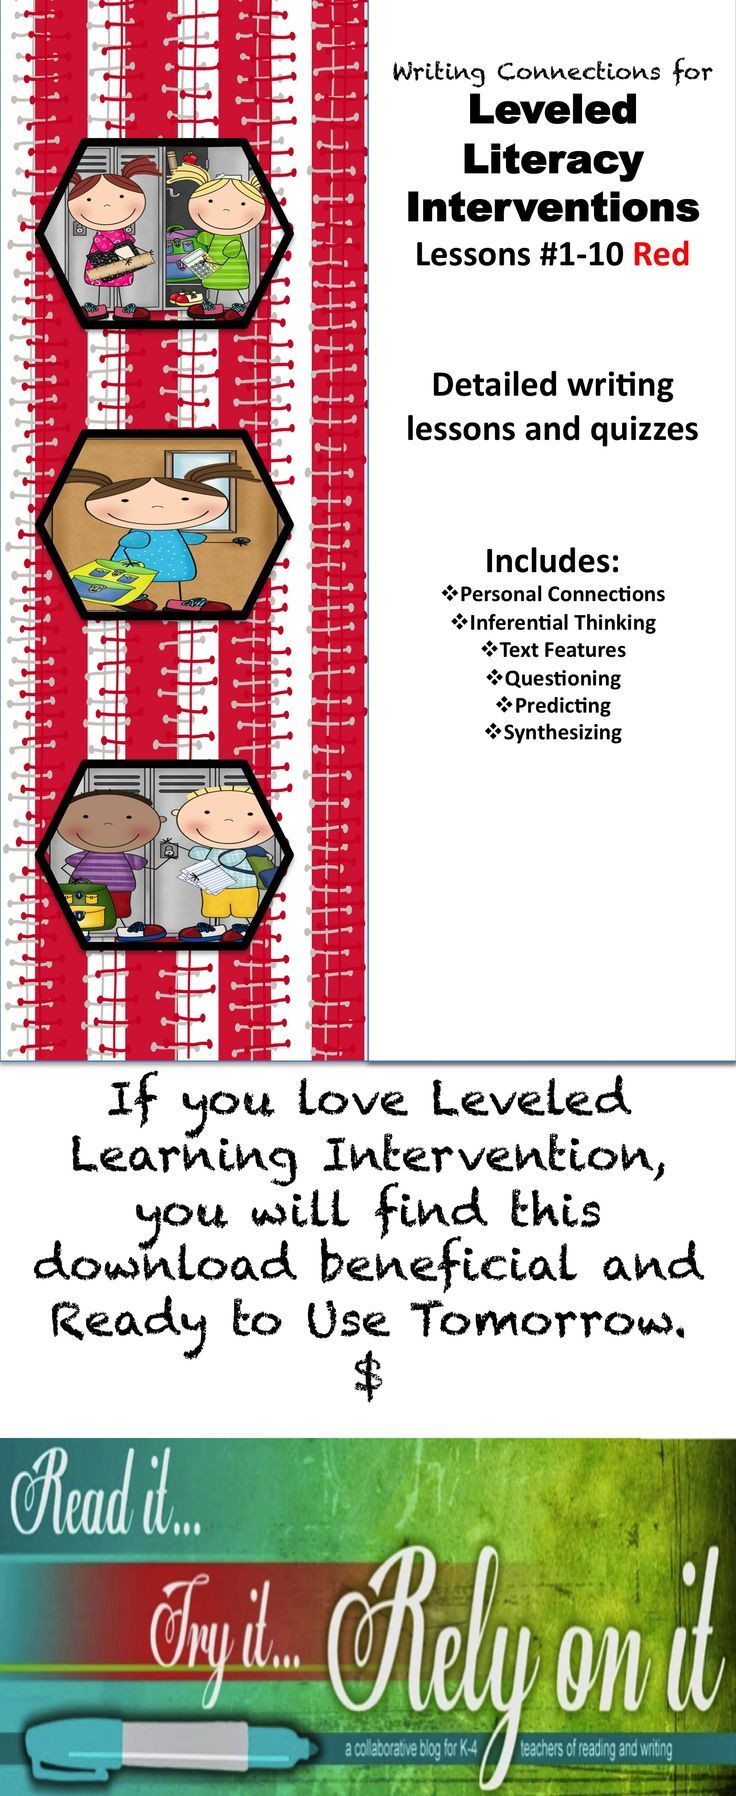 Leveled Literacy Interventions